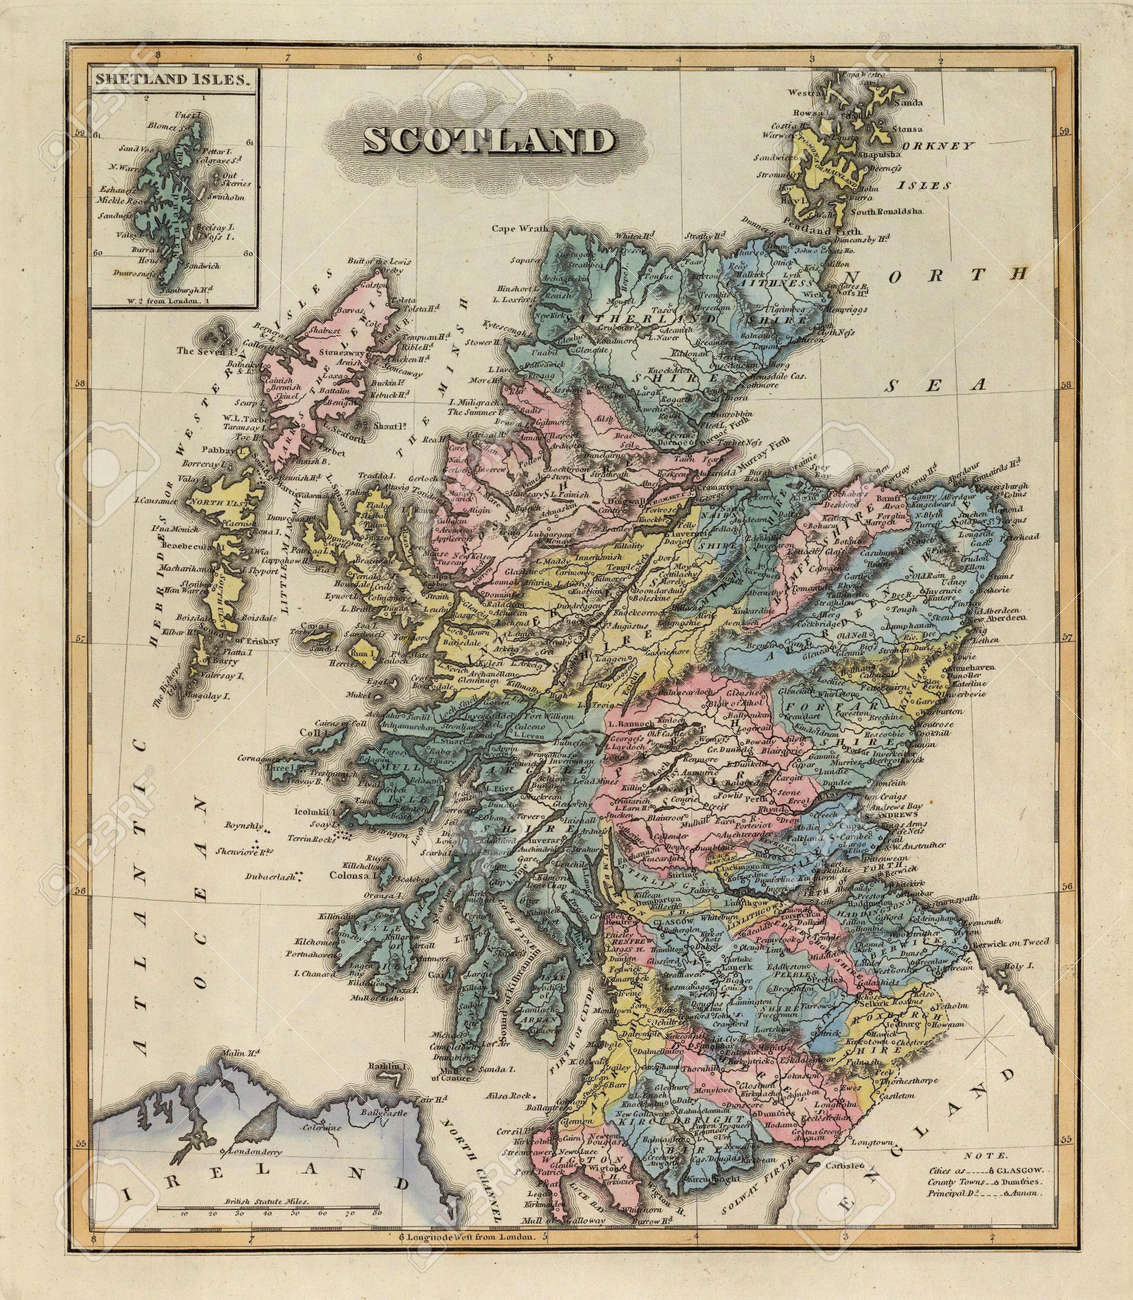 Scotland 1823 old map